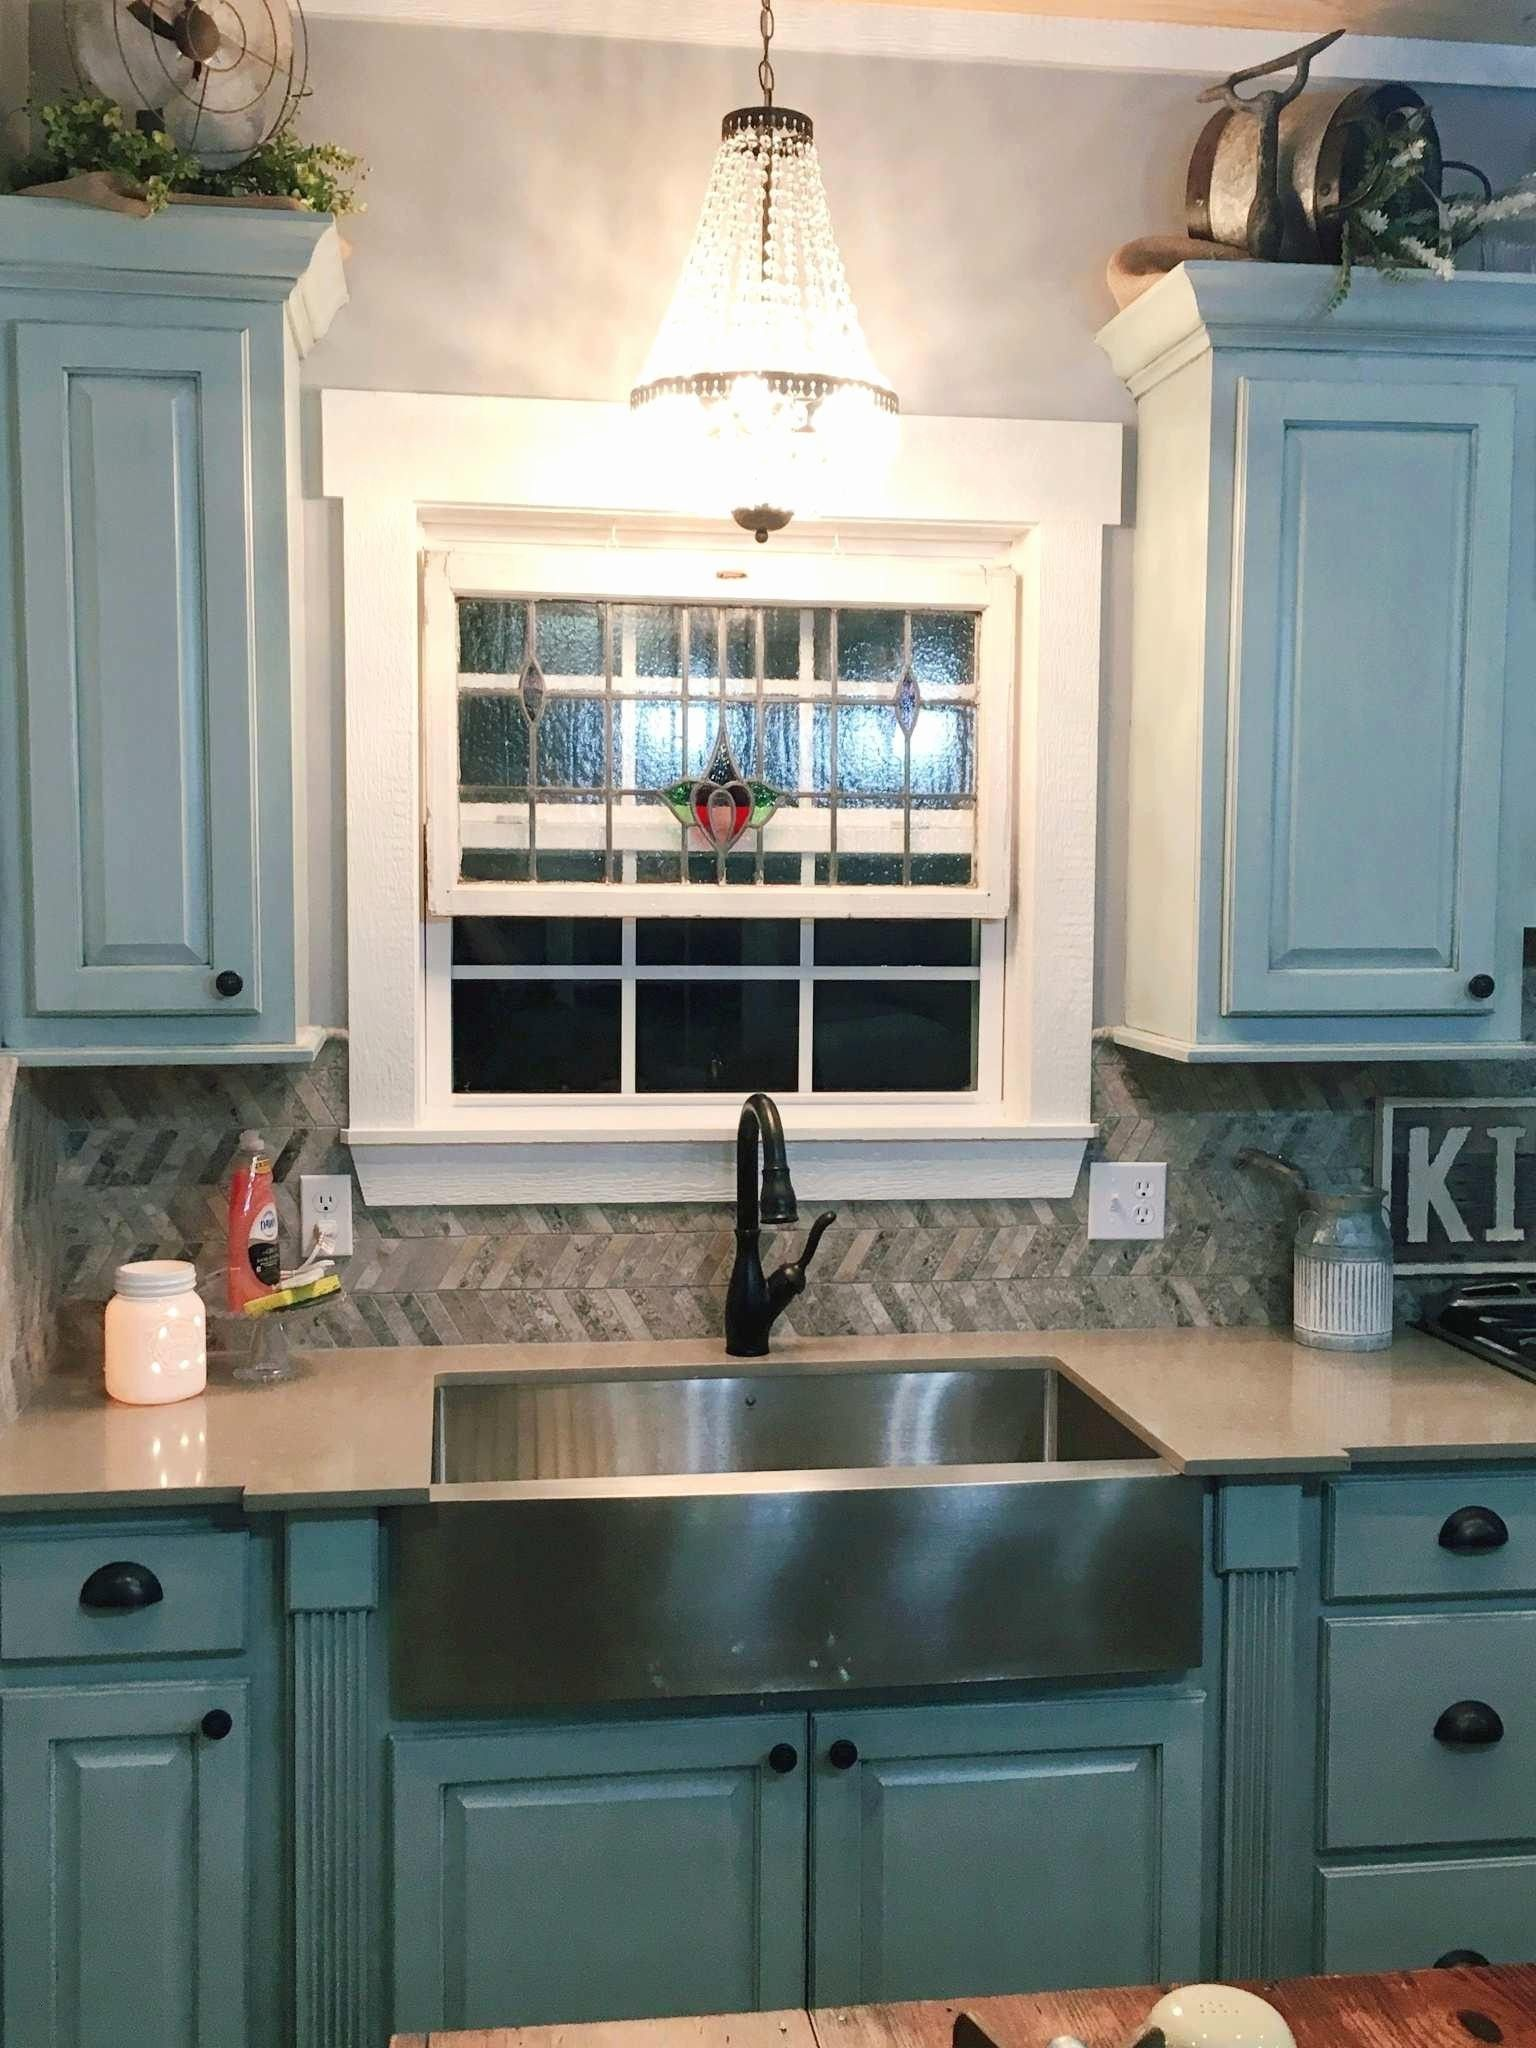 Lovely Kitchen Cabinets Revit The Most Elegant Along With Gorgeous Kitchen Cabinets Revit For Motivate Your Home Present Home Cozy Dreamhome Kitchen Cabinets